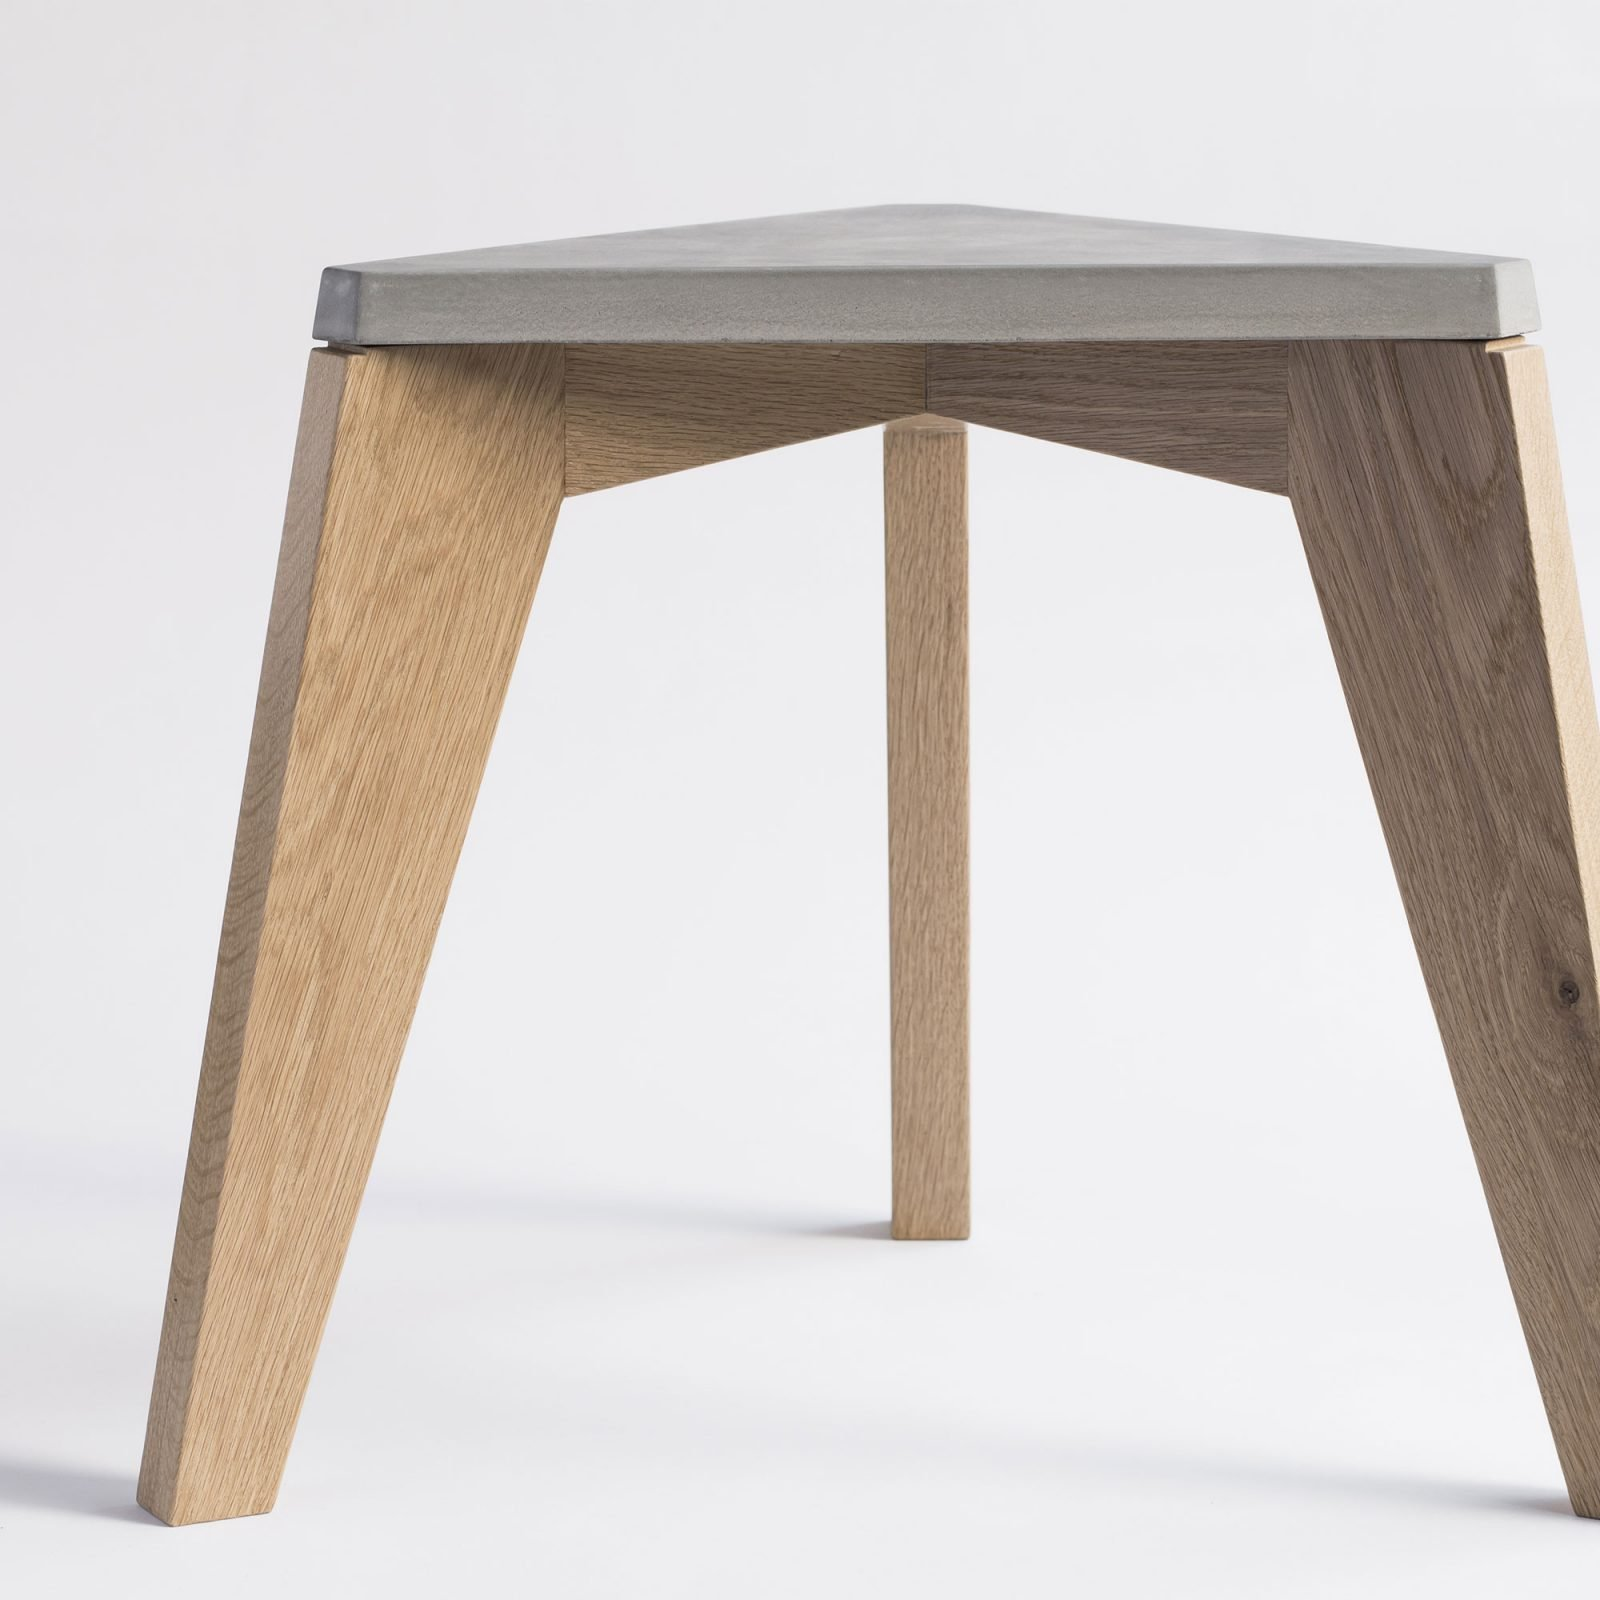 maple-wood-and-concrete-stool-4